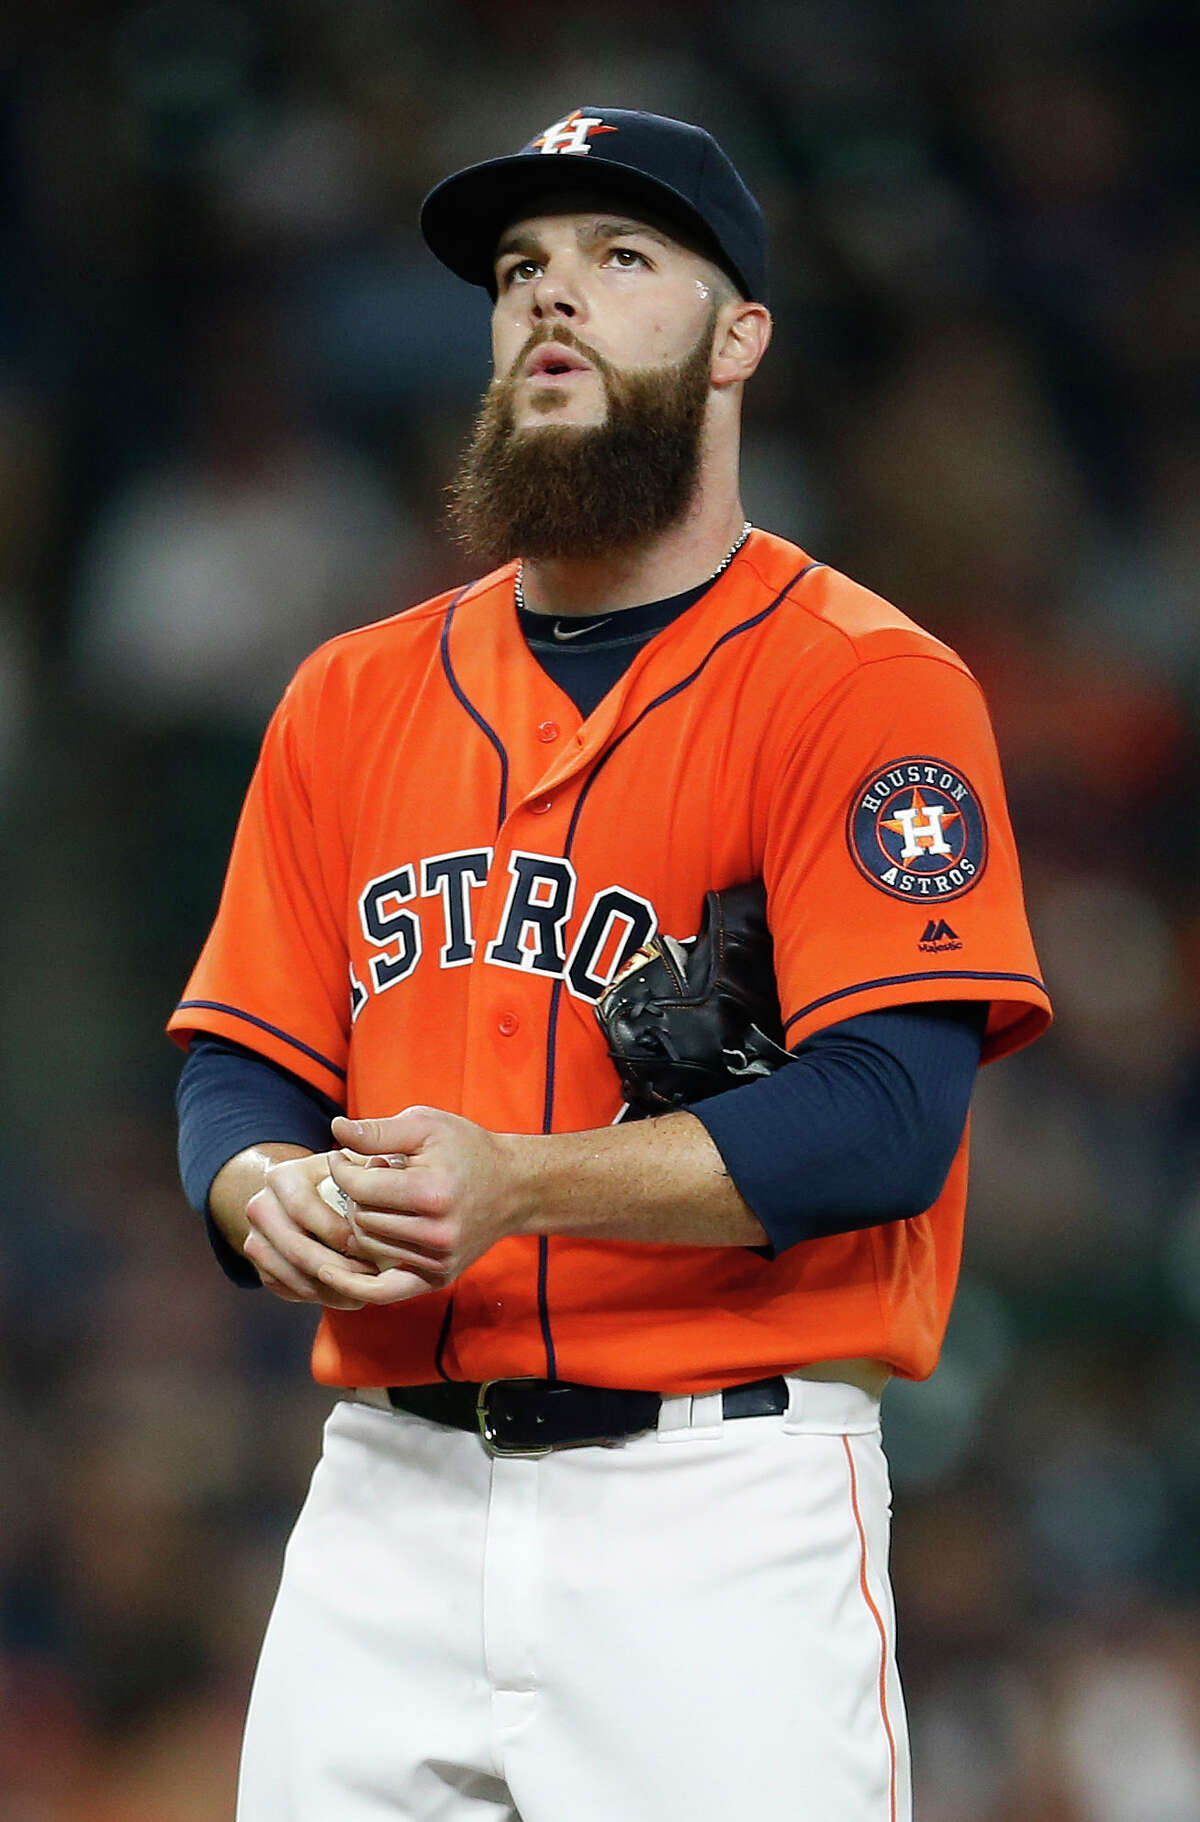 Houston Astros starting pitcher Dallas Keuchel (60) between pitches during the sixth inning of an MLB baseball game at Minute Maid Park, Friday, April 15, 2016, in Houston.